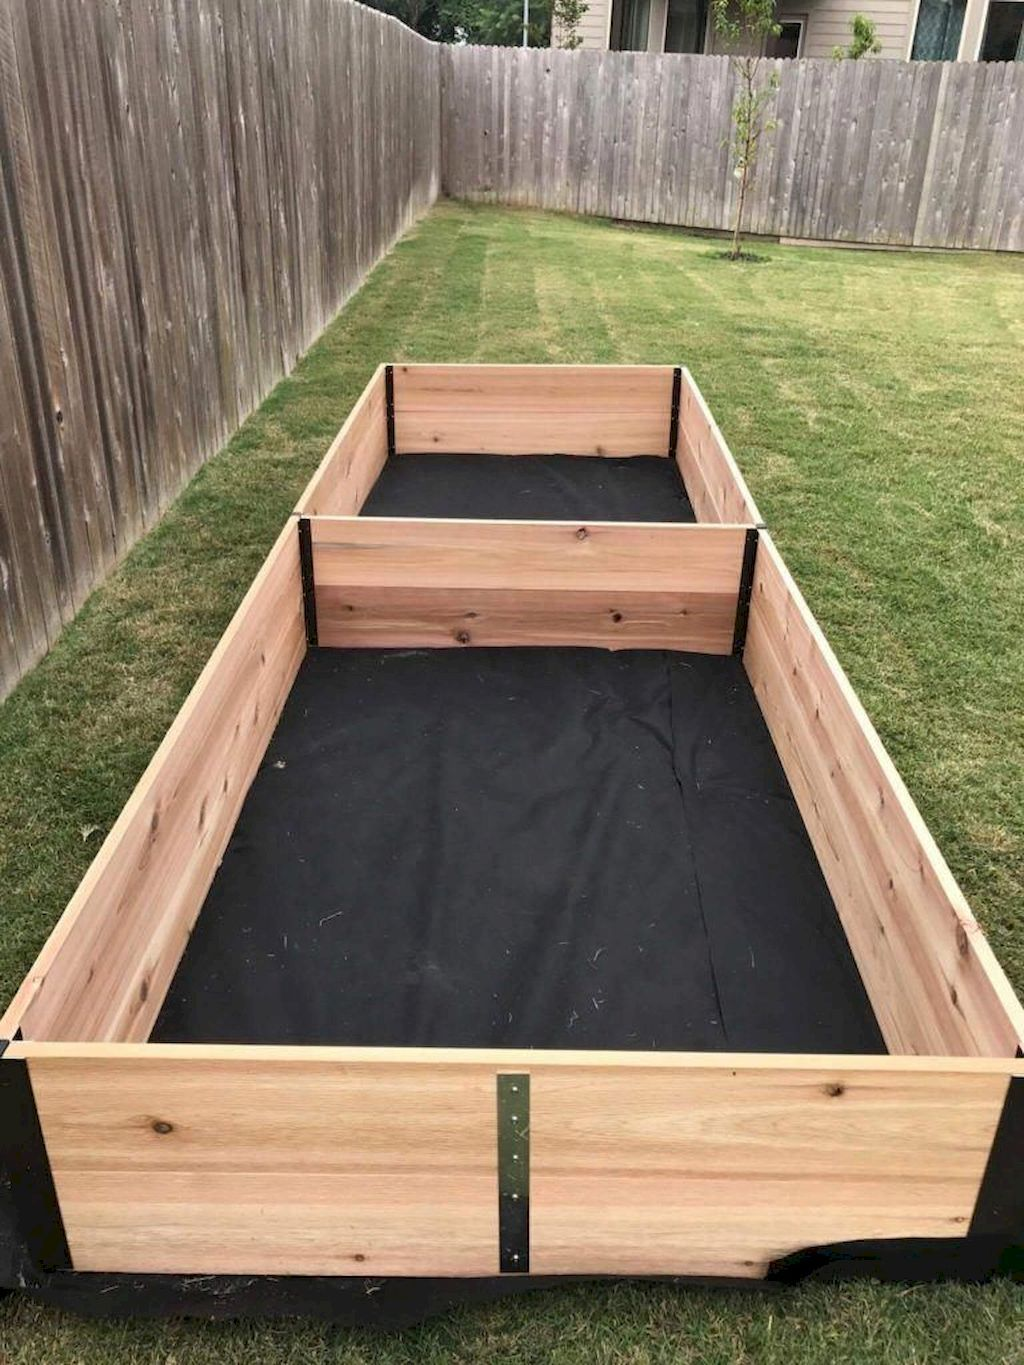 55 Diy Raised Garden Bed Plans Ideas You Can Build Vegetable Garden Raised Beds Building A Raised Garden Raised Garden Bed Plans